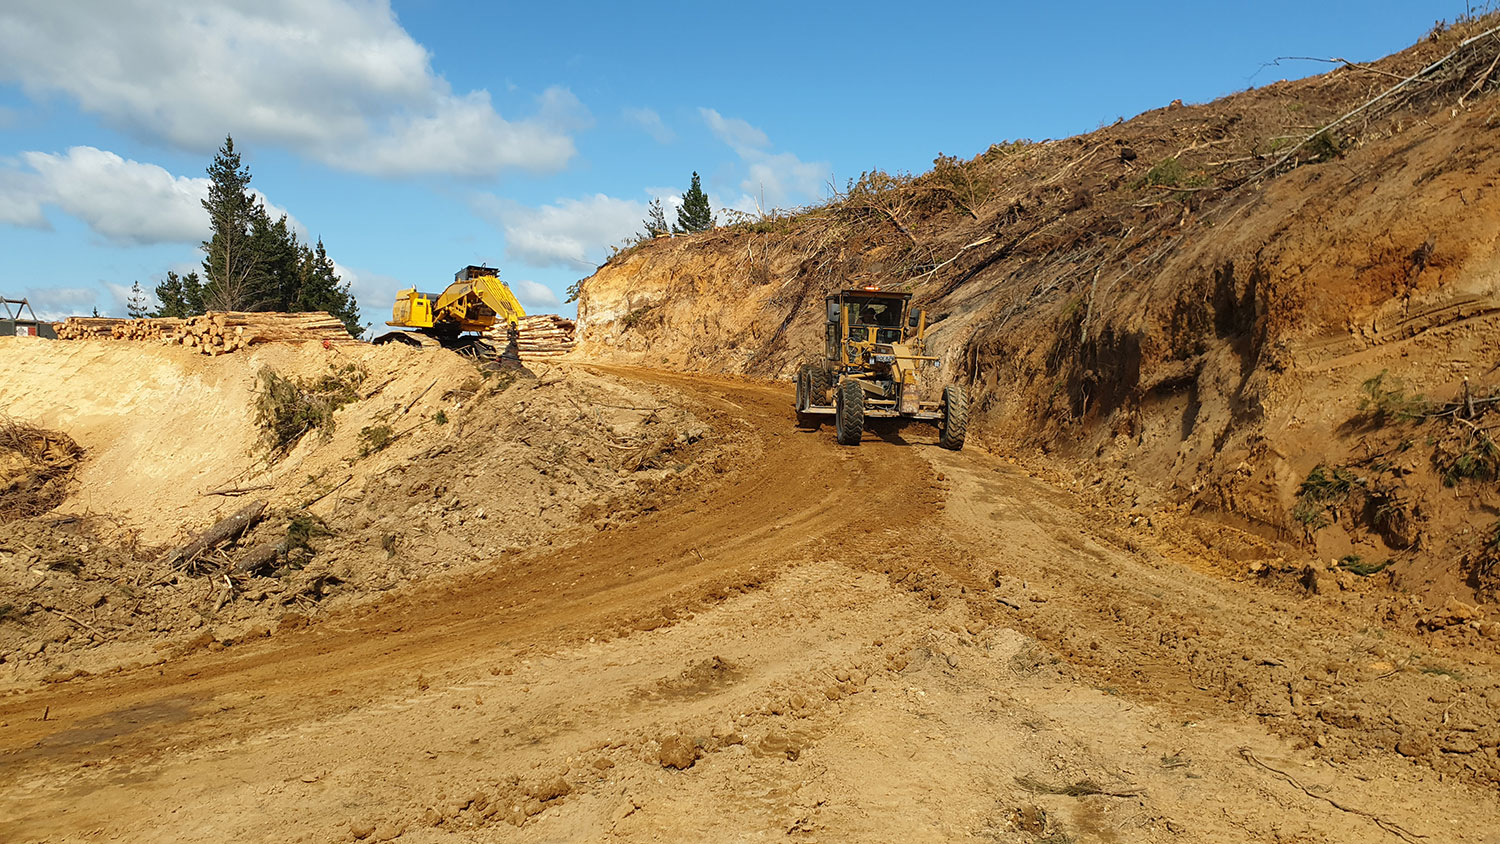 kopu-kairoa-logging-road-cirtex-duraforce